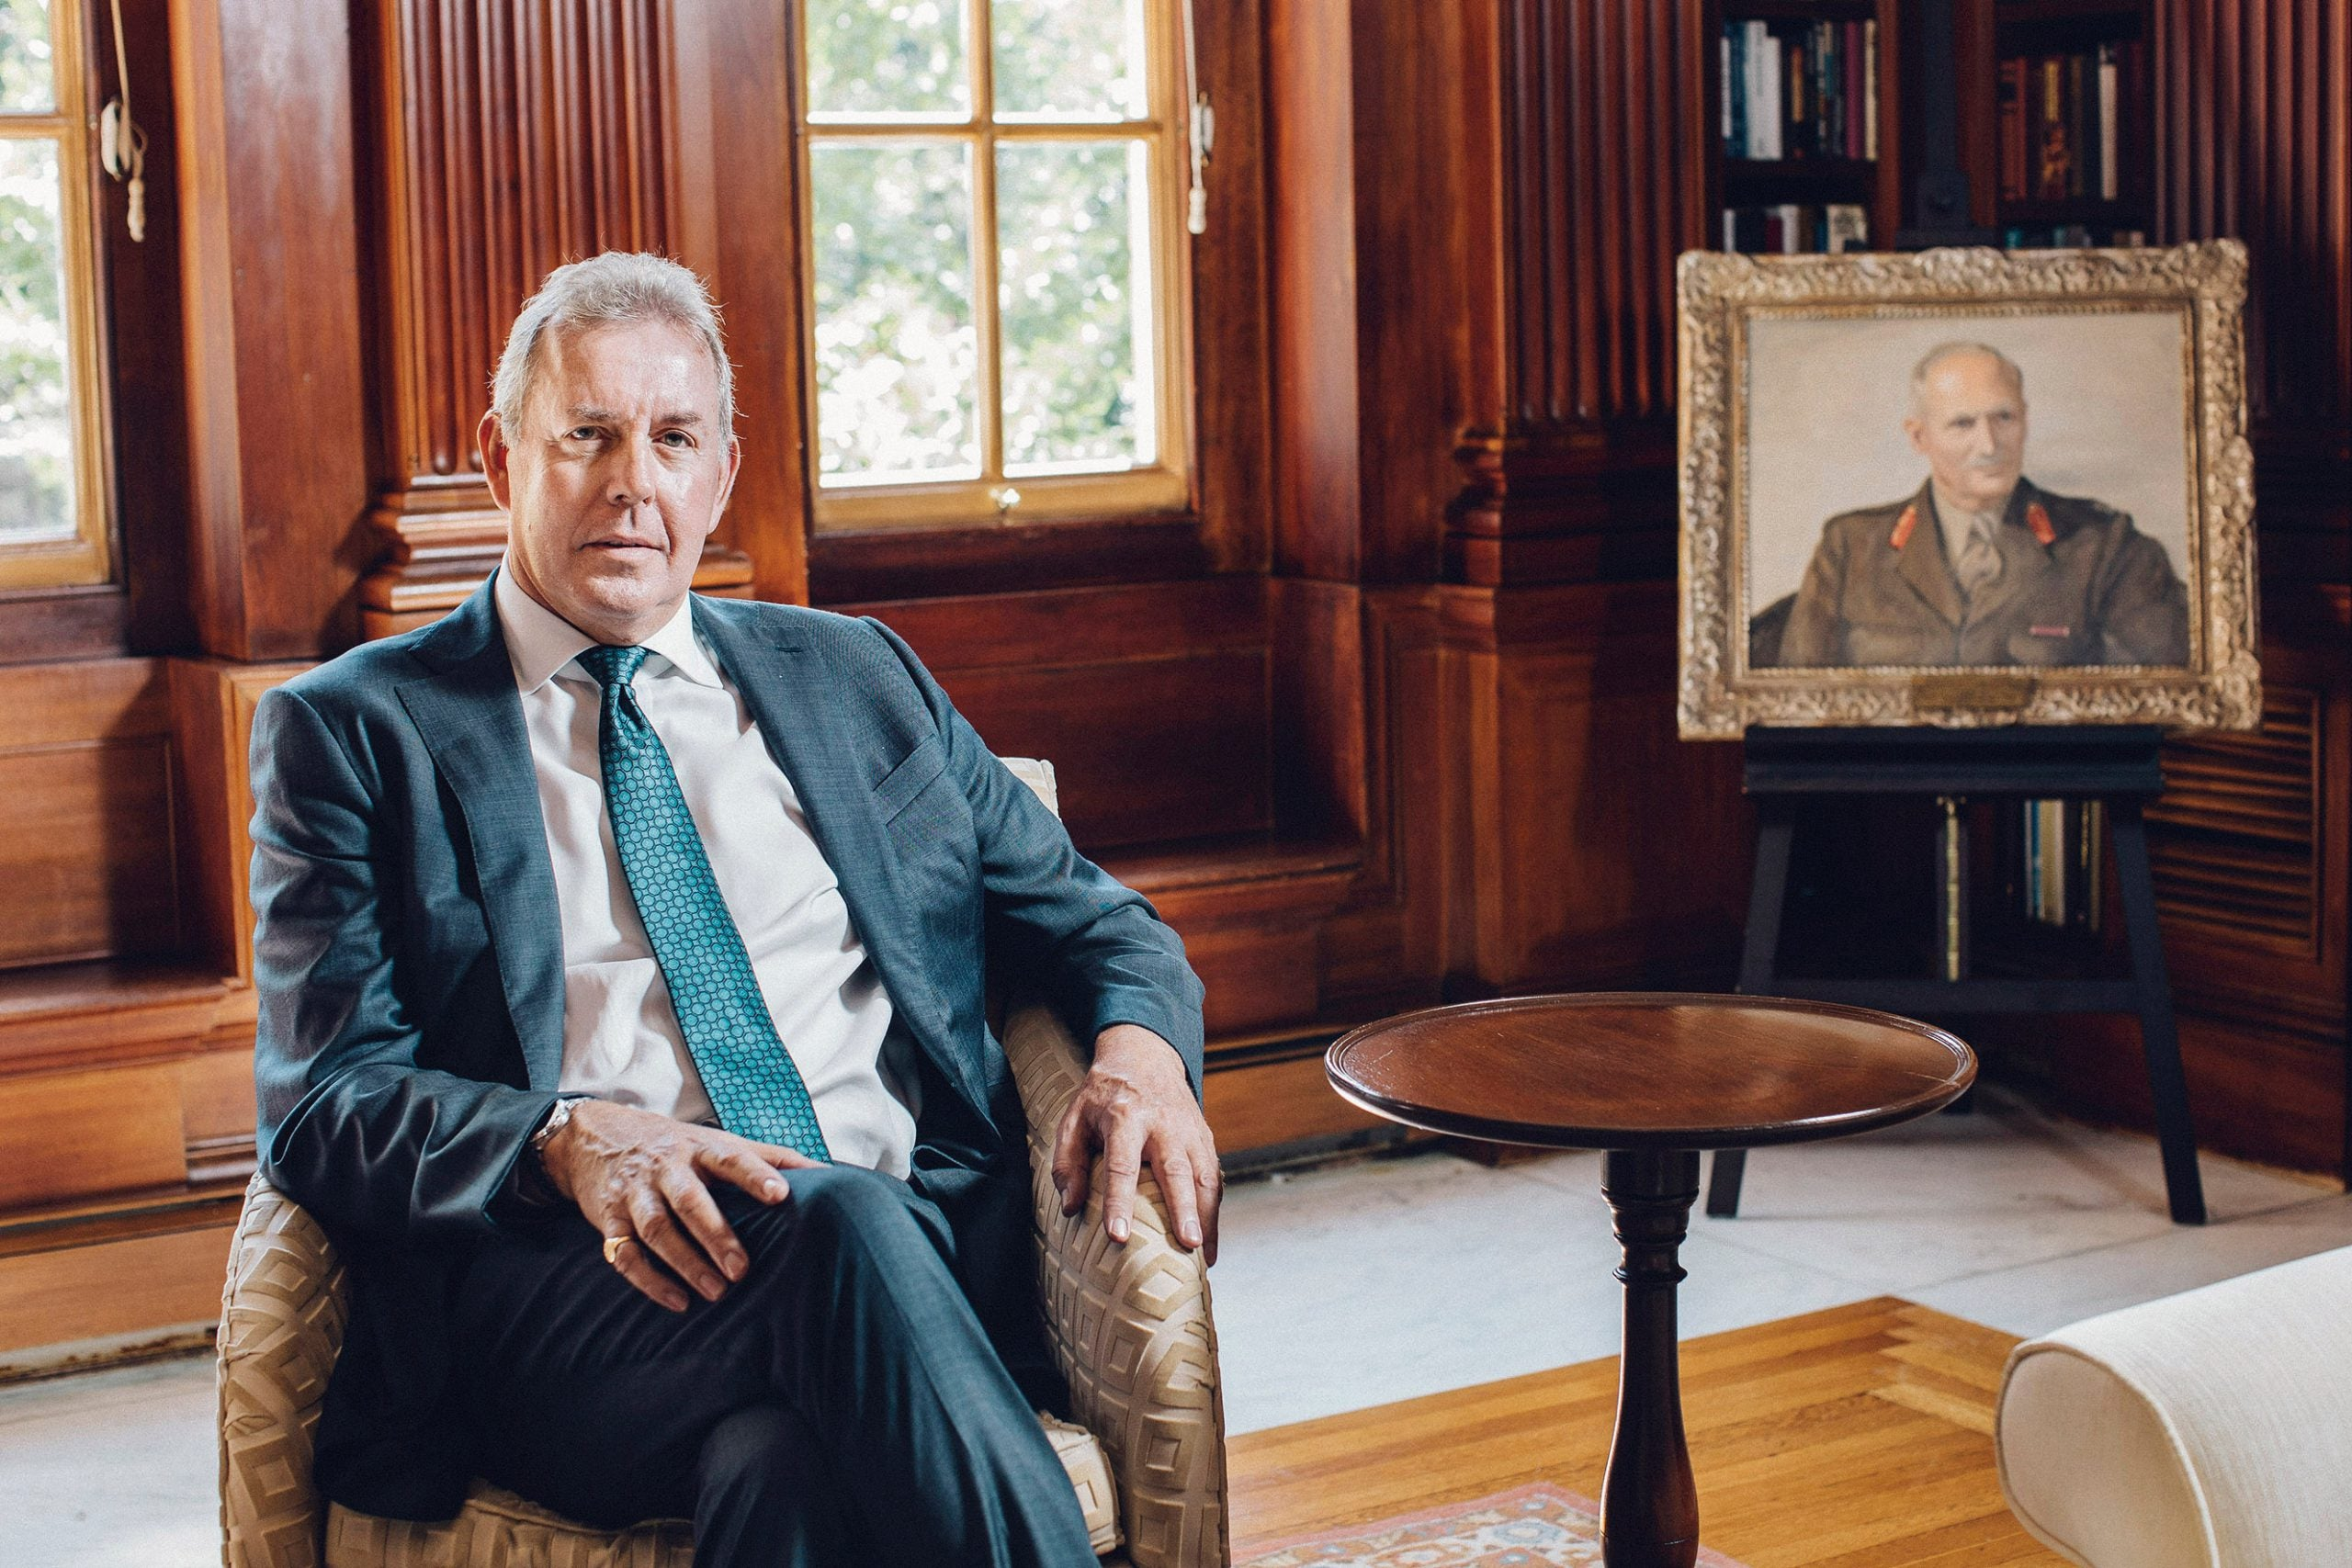 Kim Darroch and the art of the diplomat